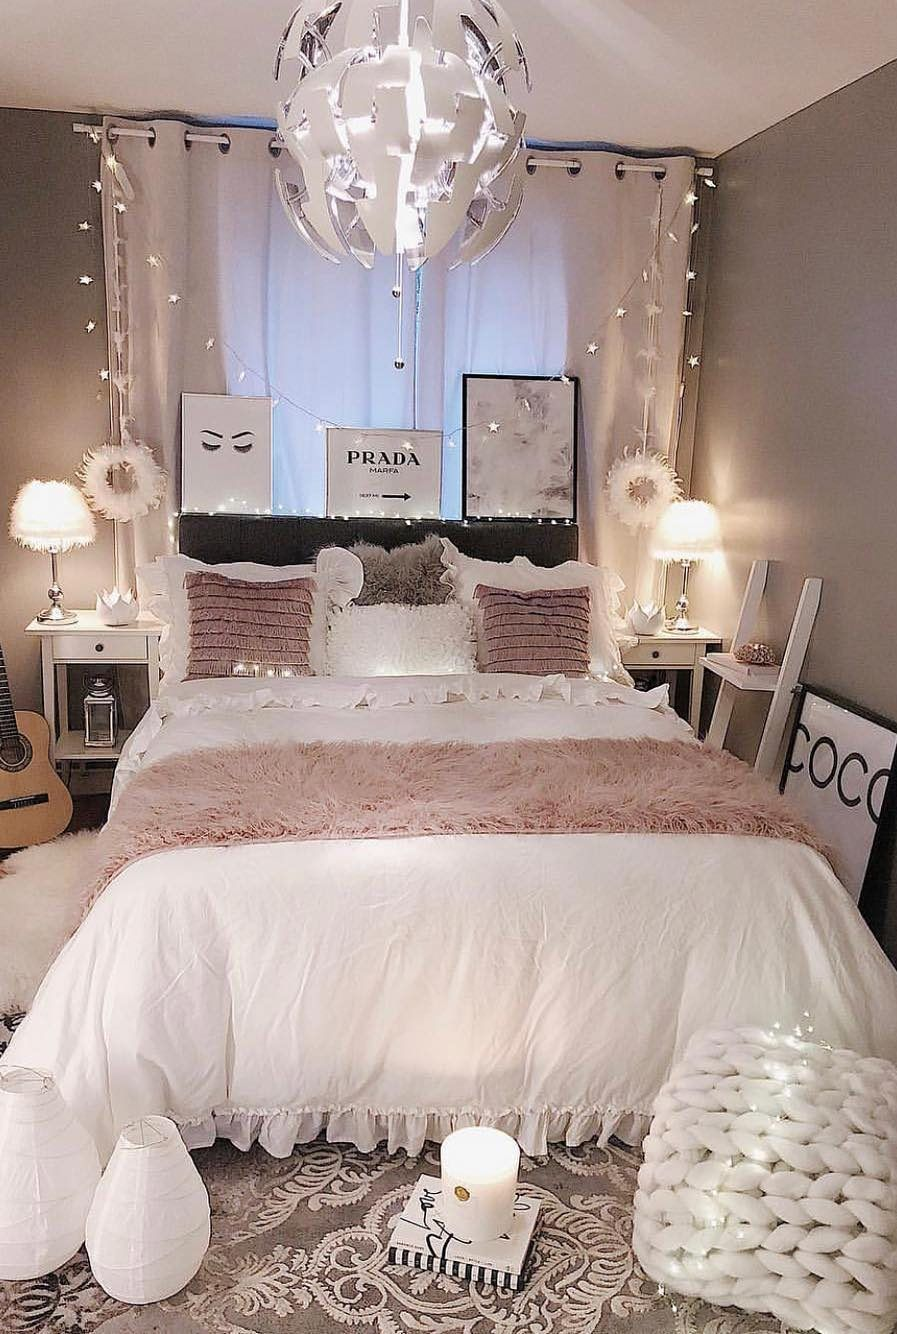 43 Small And Cute Bedroom Designs And Ideas For This Year Page 24 Of 43 Womensays Com Women Blog Luxurious Bedrooms Girl Bedroom Designs Small Master Bedroom